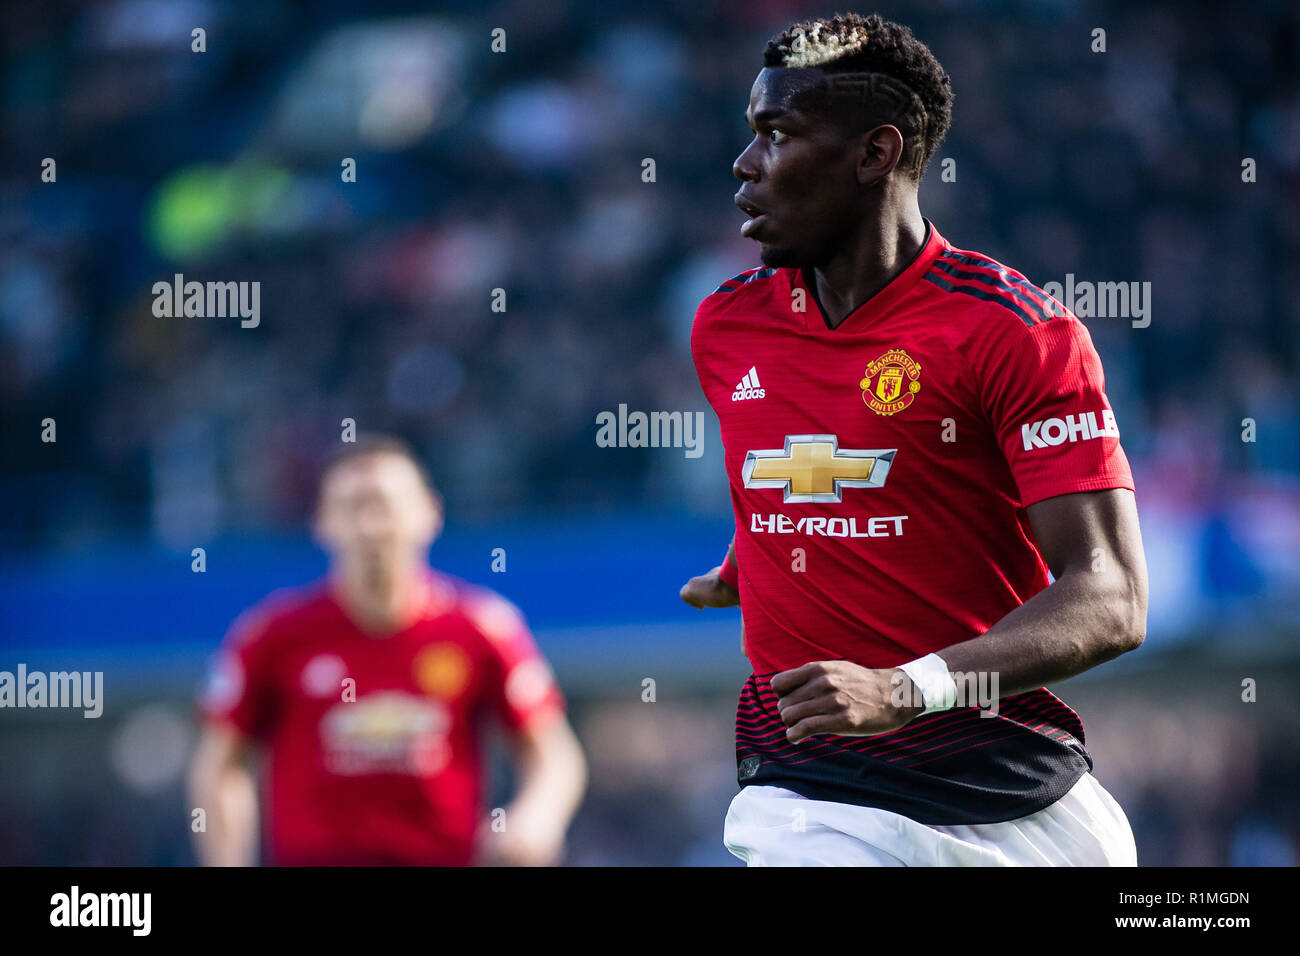 LONDON, ENGLAND - OCTOBER 20: Paul Pogba of Manchester United looks on during the Premier League match between Chelsea FC and Manchester United at Stamford Bridge on October 20, 2018 in London, United Kingdom. (Photo by Sebastian Frej/MB Media/Getty Images) Stock Photo